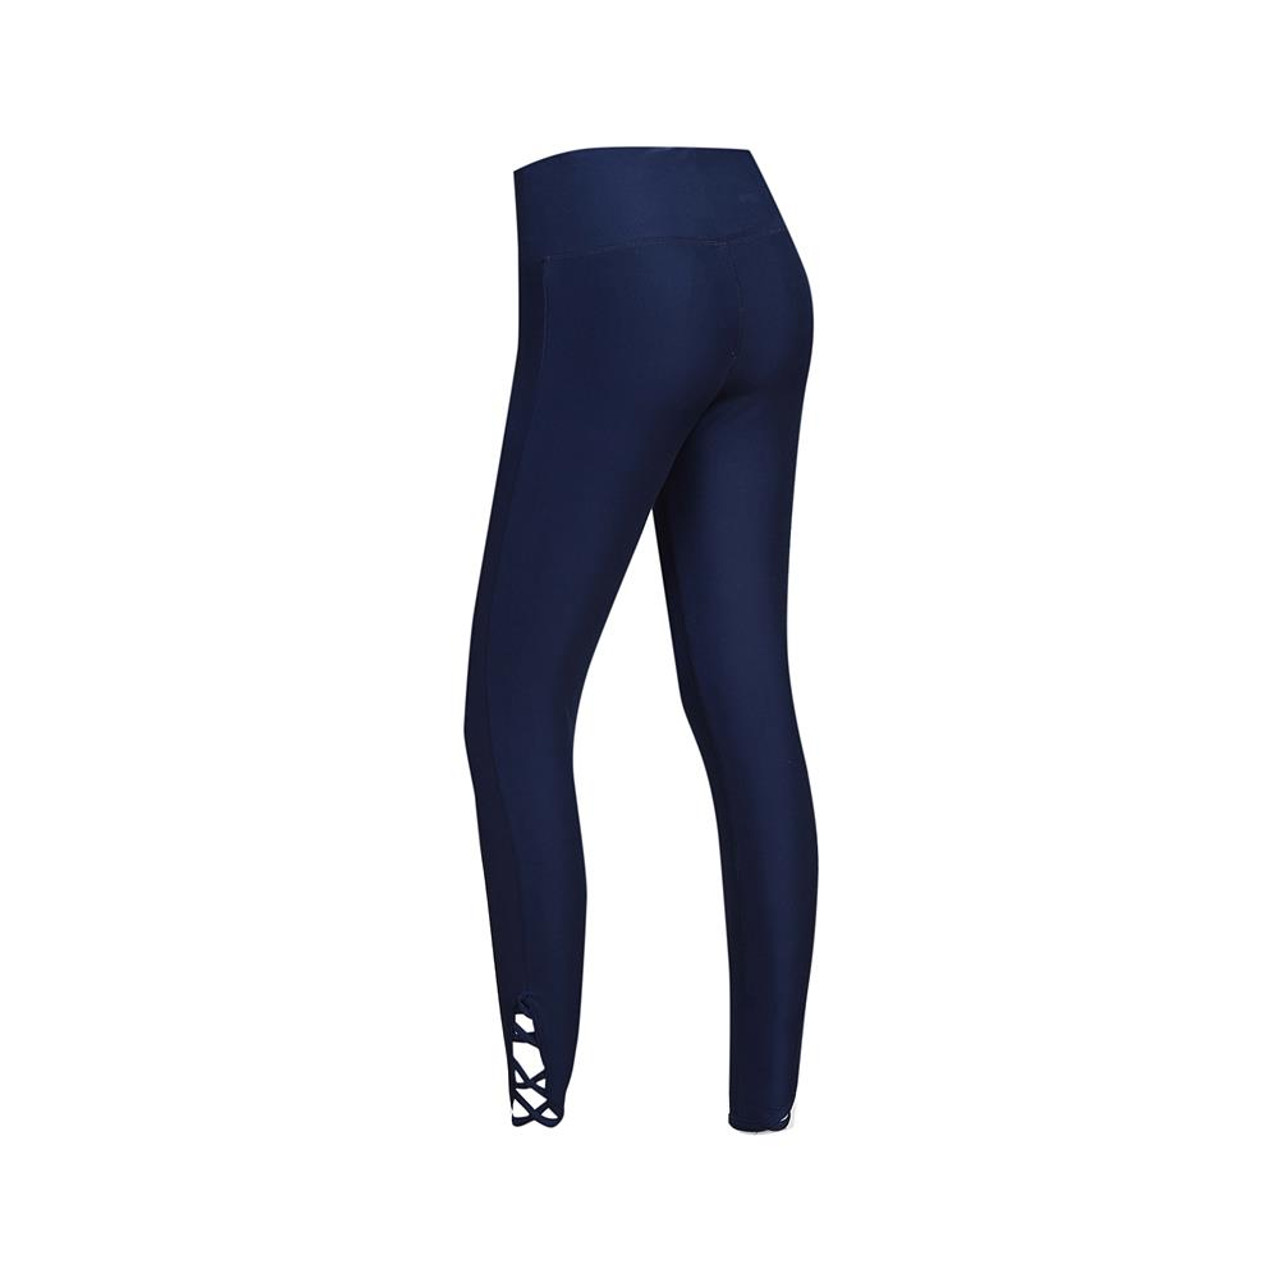 Saint Louis Blues St Ladies' Leggings Fortitude Yoga Pants